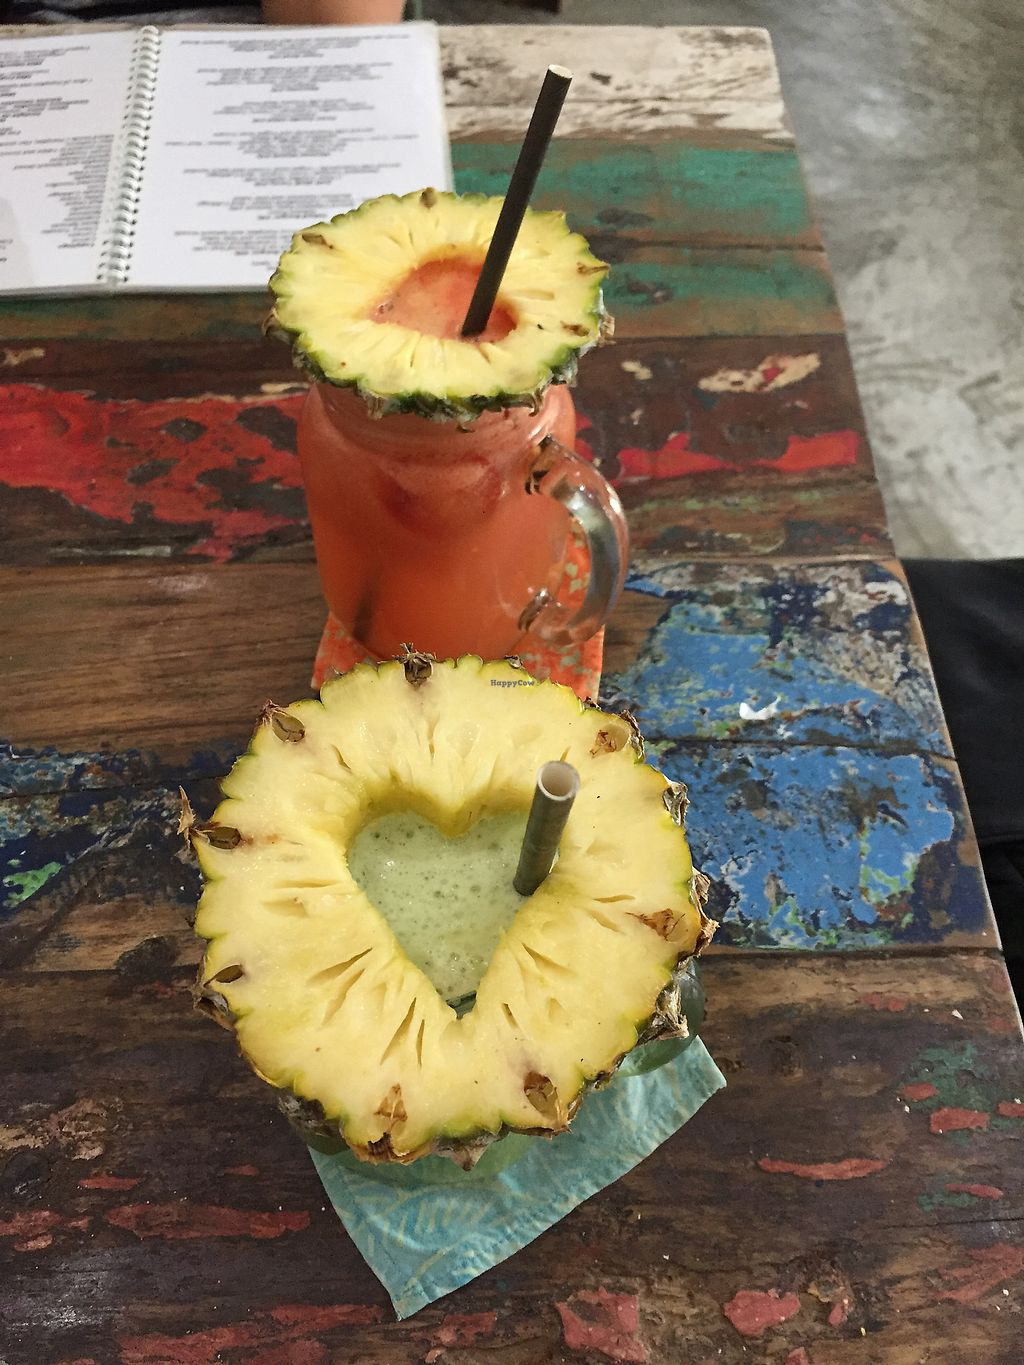 """Photo of CLOSED: The Spicy Coconut  by <a href=""""/members/profile/auroreFR"""">auroreFR</a> <br/>love the ananas hearts! <br/> August 19, 2017  - <a href='/contact/abuse/image/73419/294343'>Report</a>"""